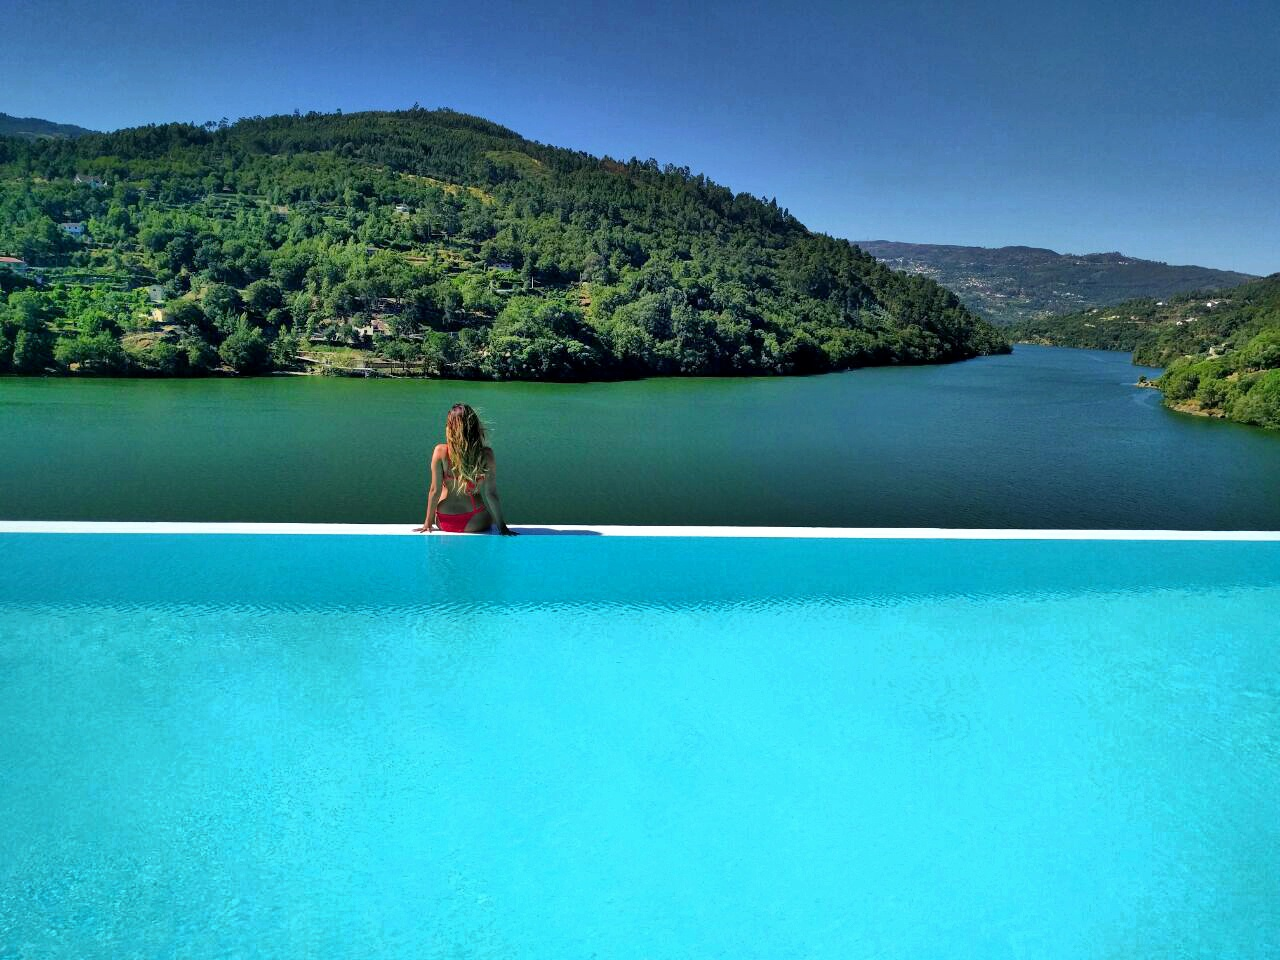 Infinity Pool at the Douro Royal Valley Hotel and Spa